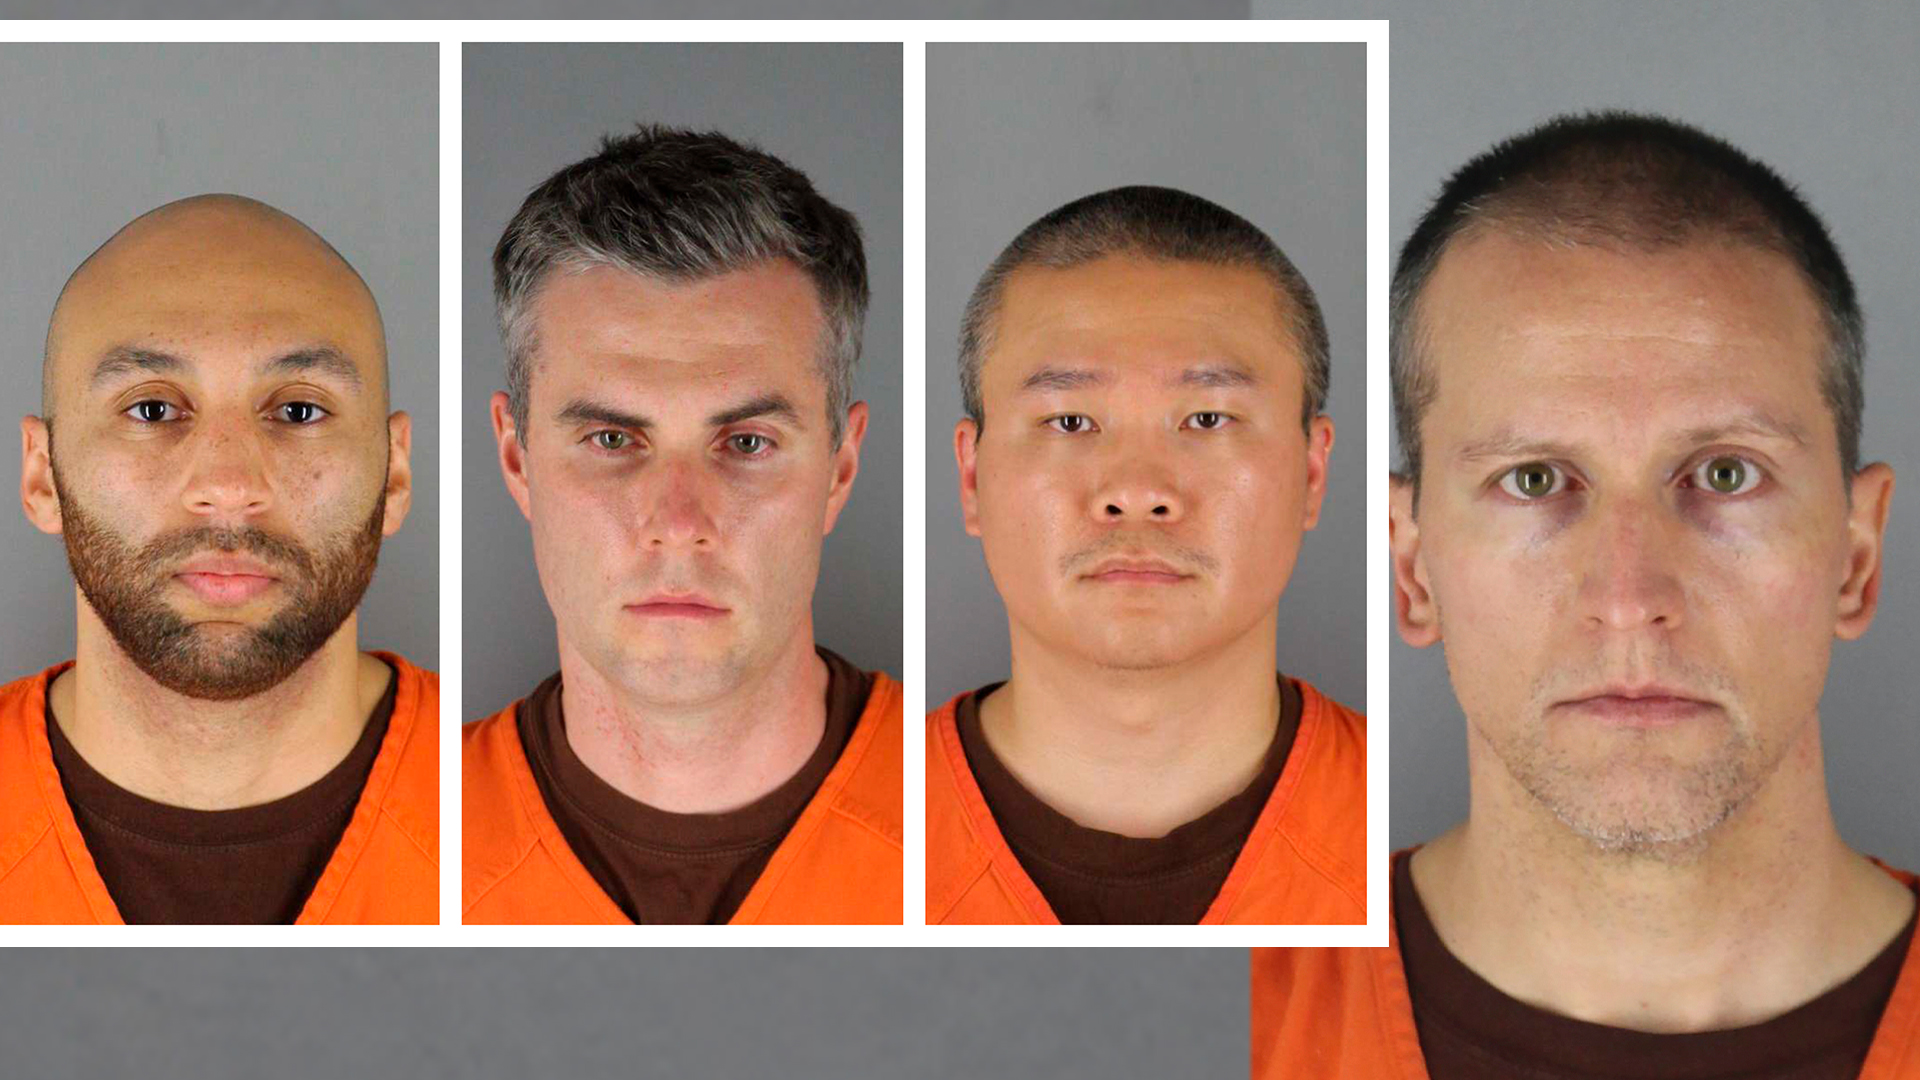 mug shots of 4 officers charged in the George Floyd case